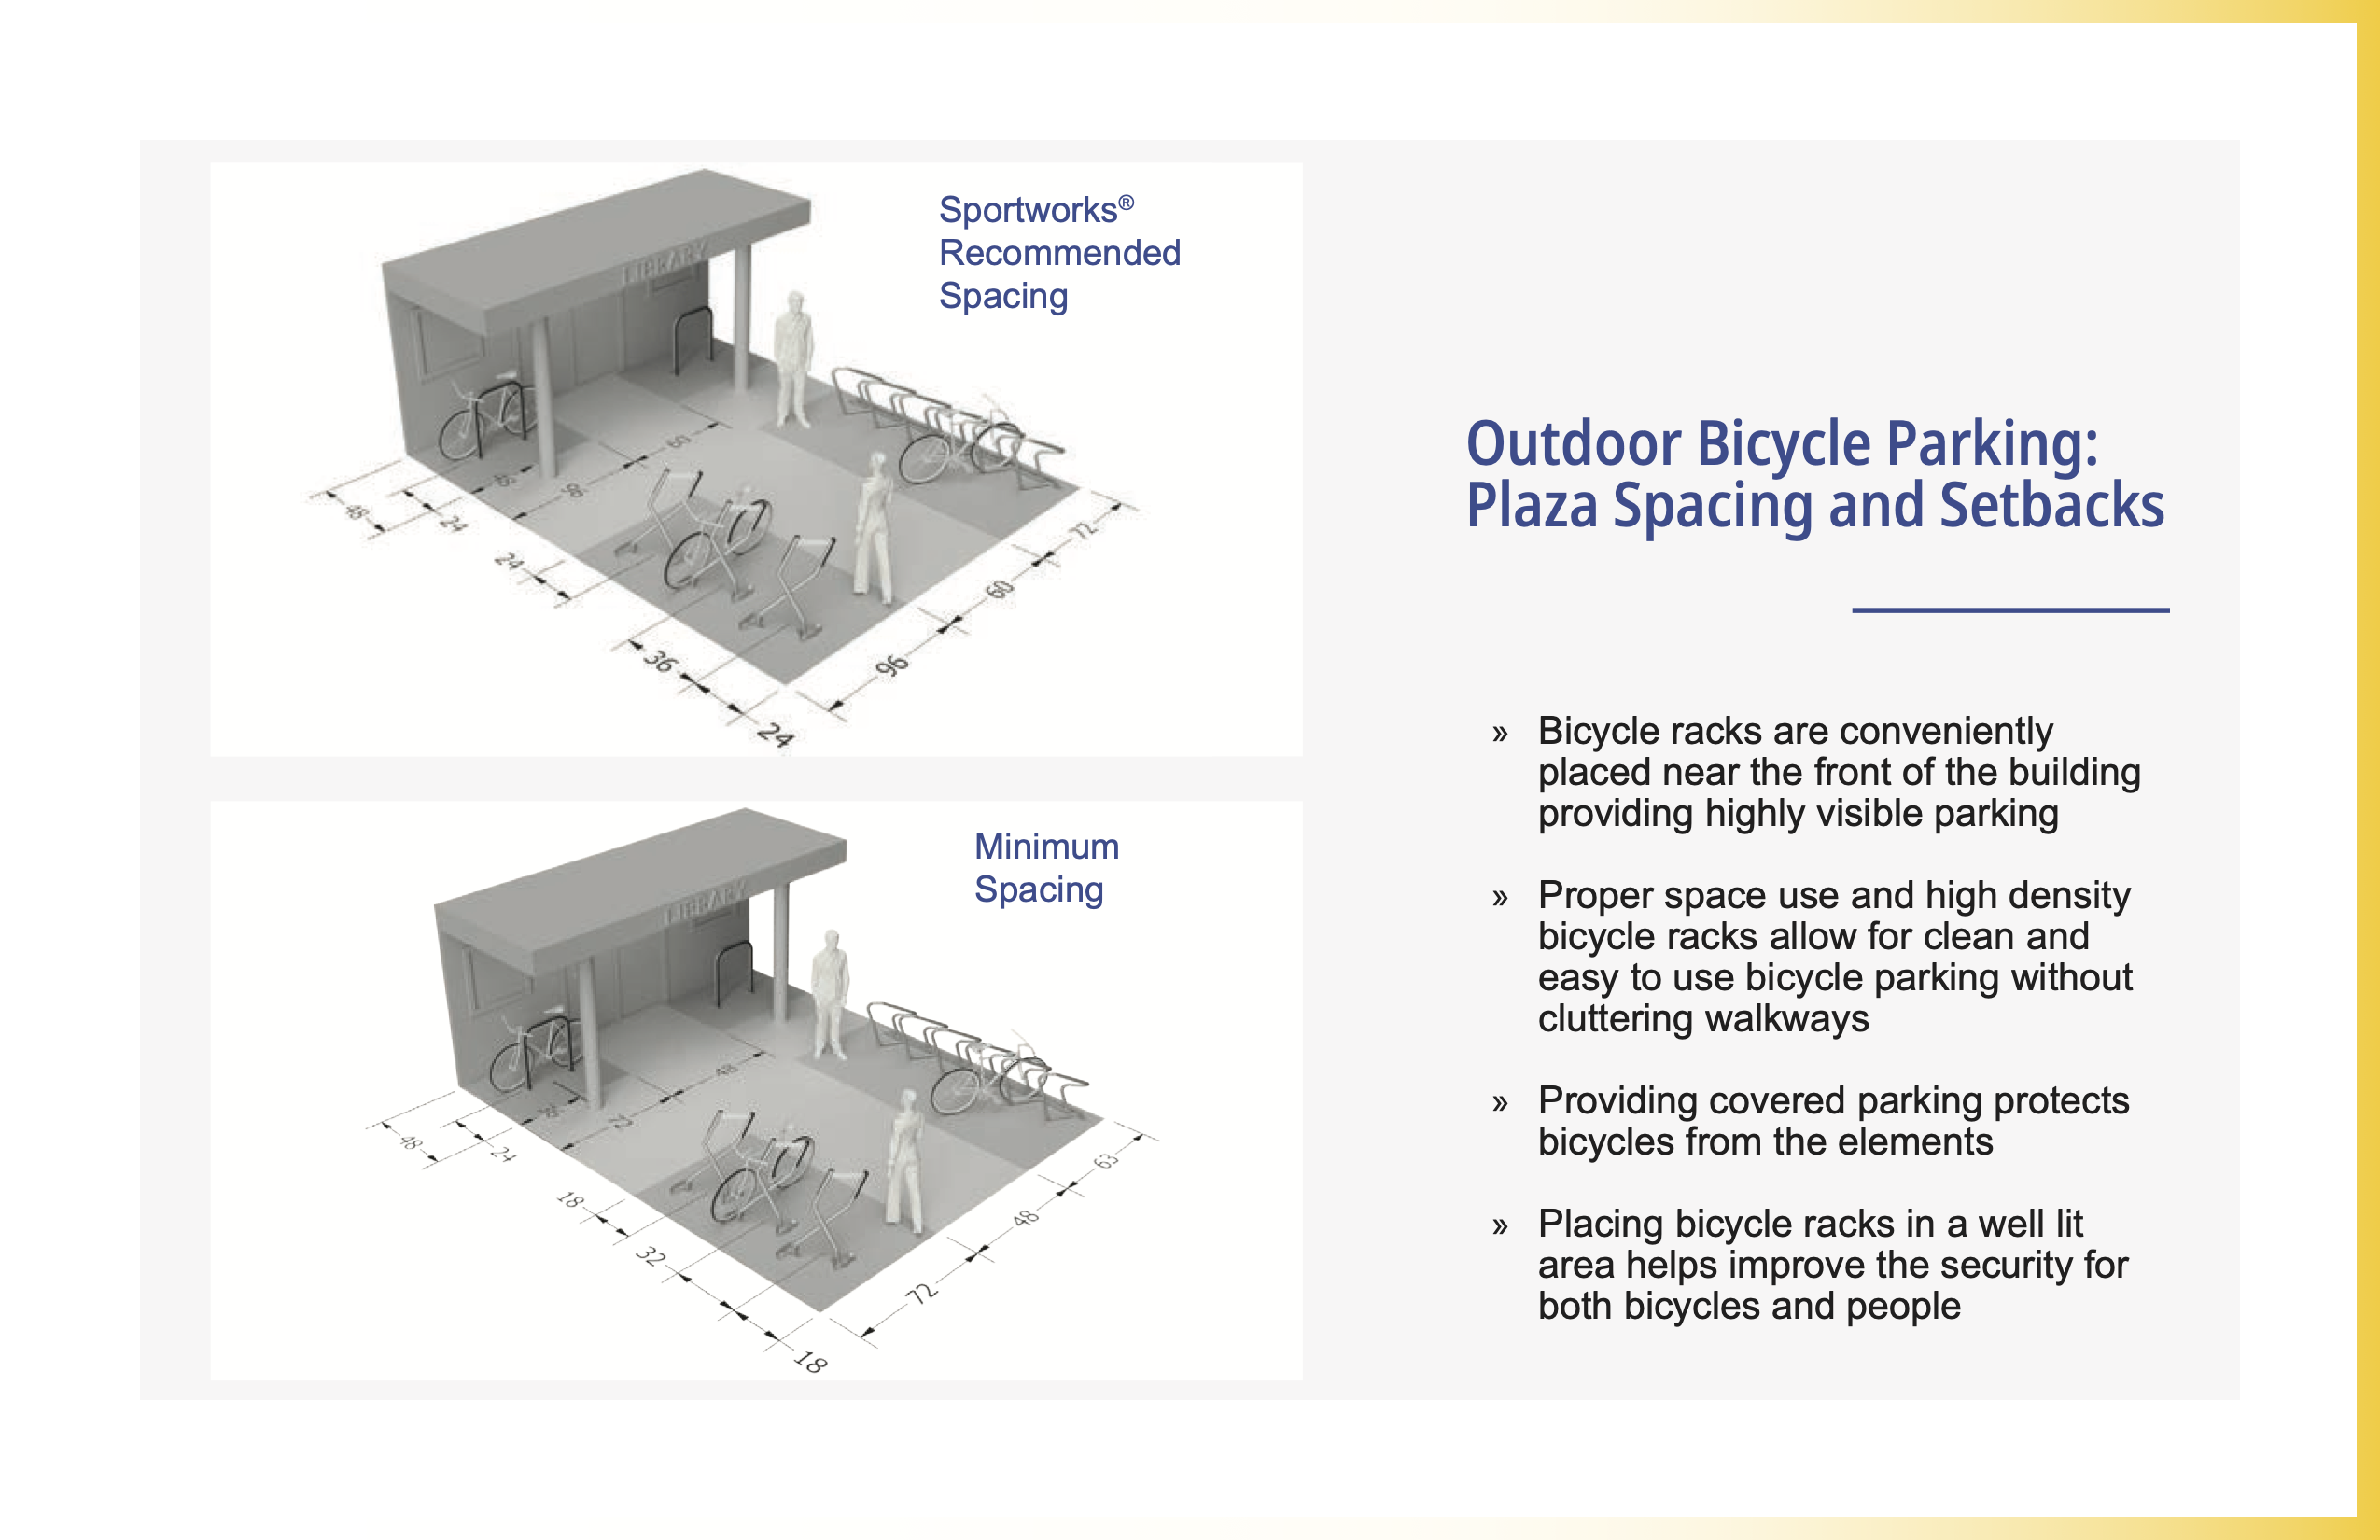 Bicycle Parking Outdoor Plaza  Spacing